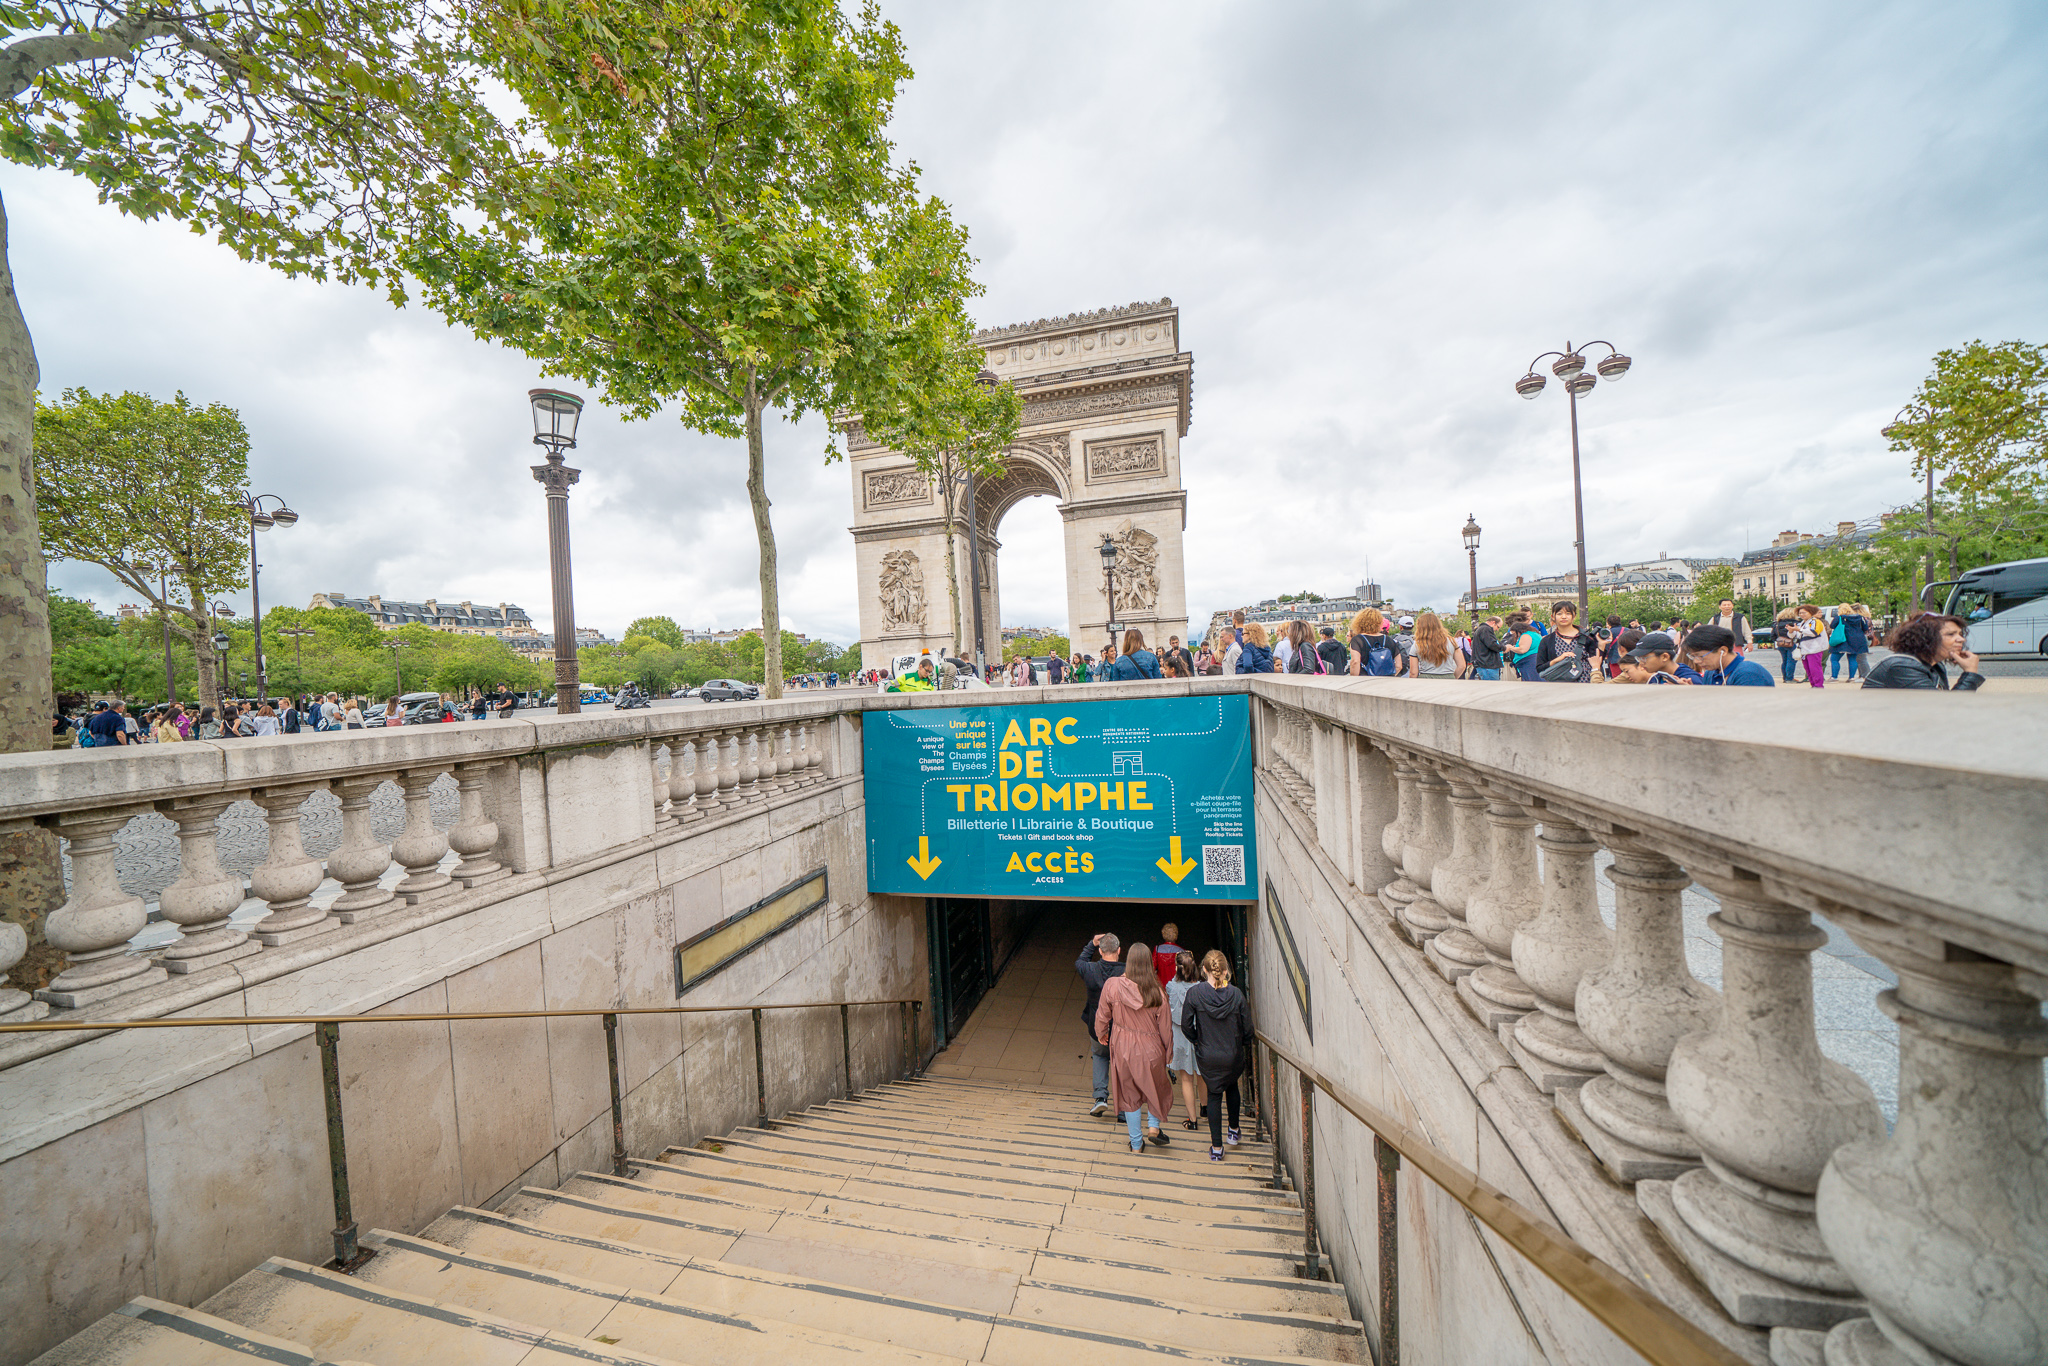 The Arc de Triomphe passage way